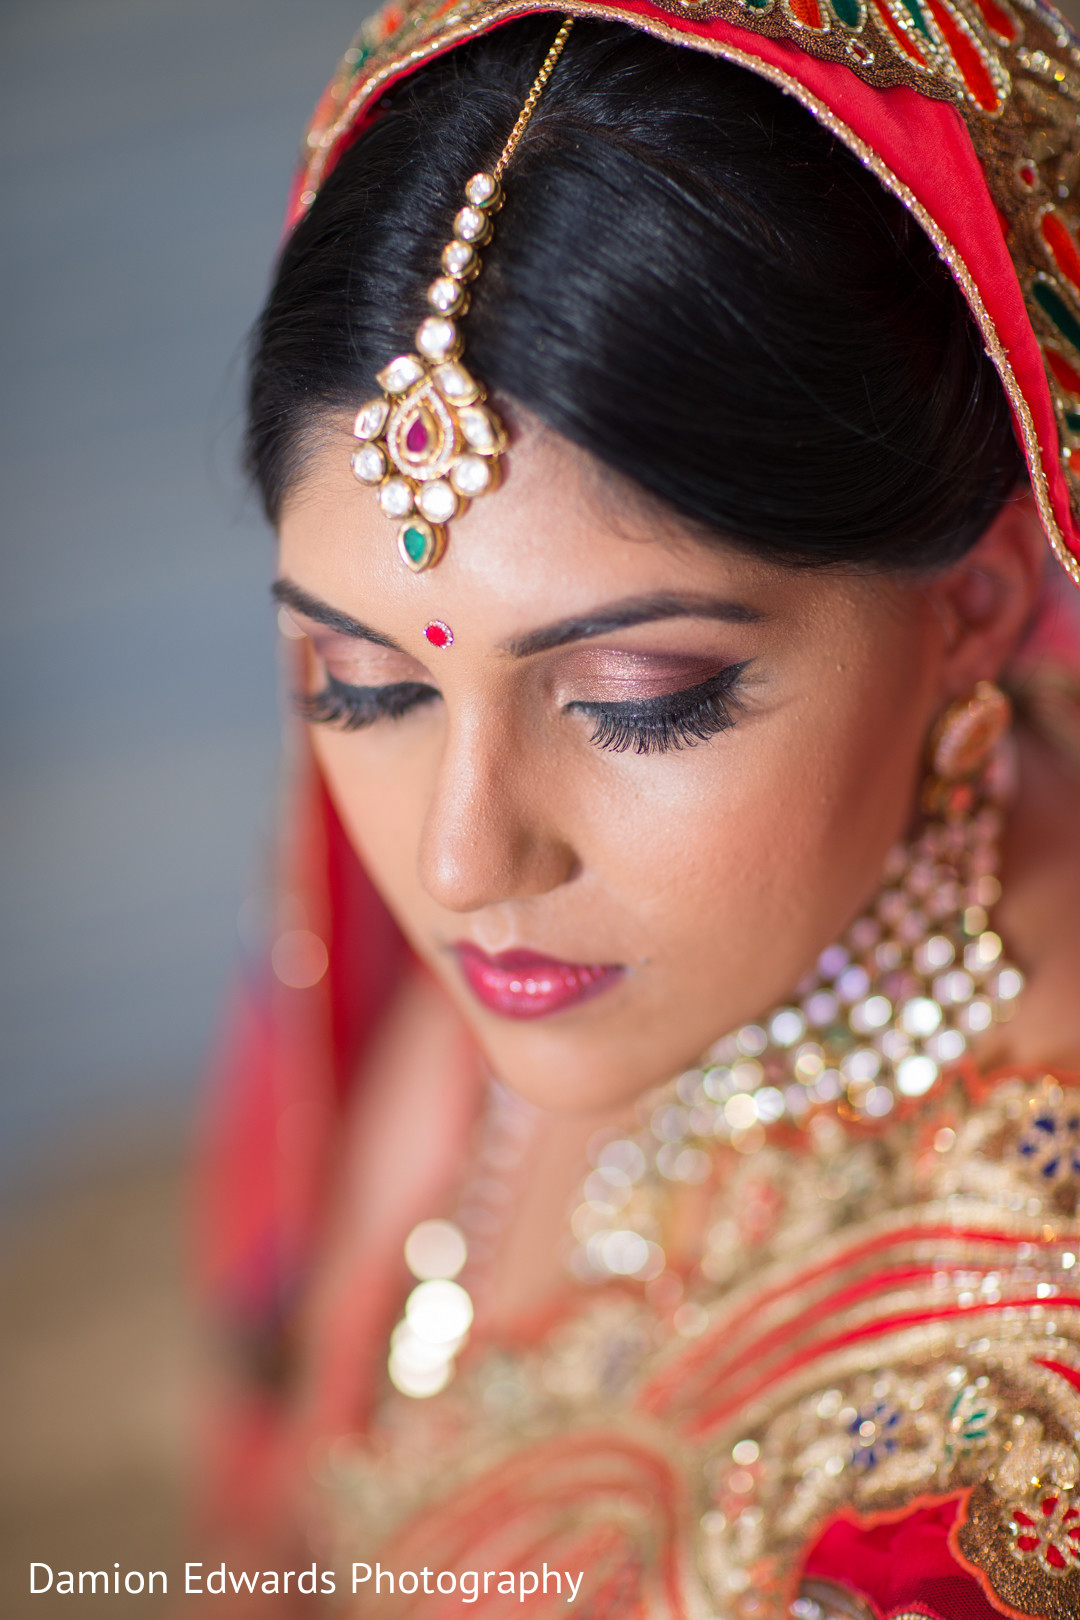 Makeup Jewelry In Jersey City Nj Indian Wedding By Damion Edwards Photography Maharani Weddings